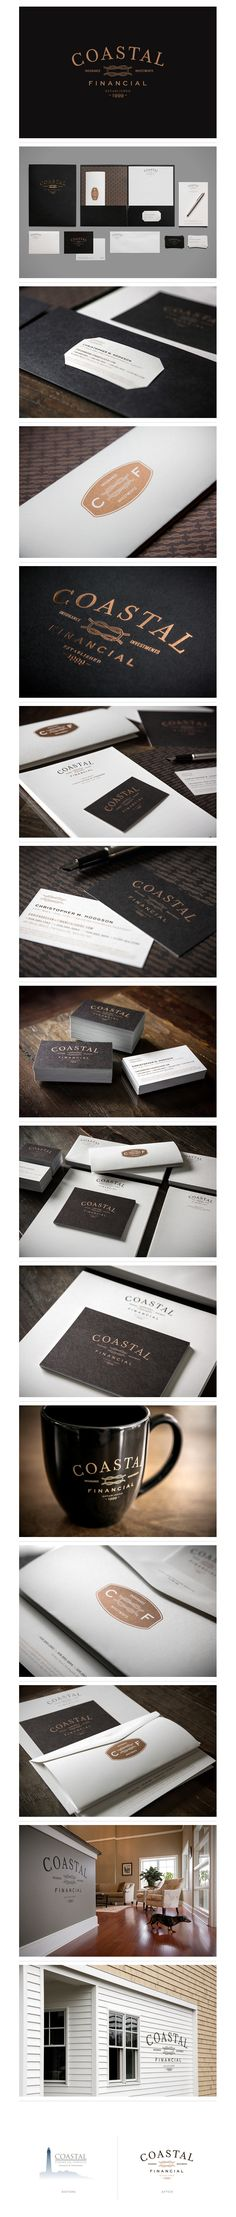 Coastal Financial Identity by Bluerock Design Co.